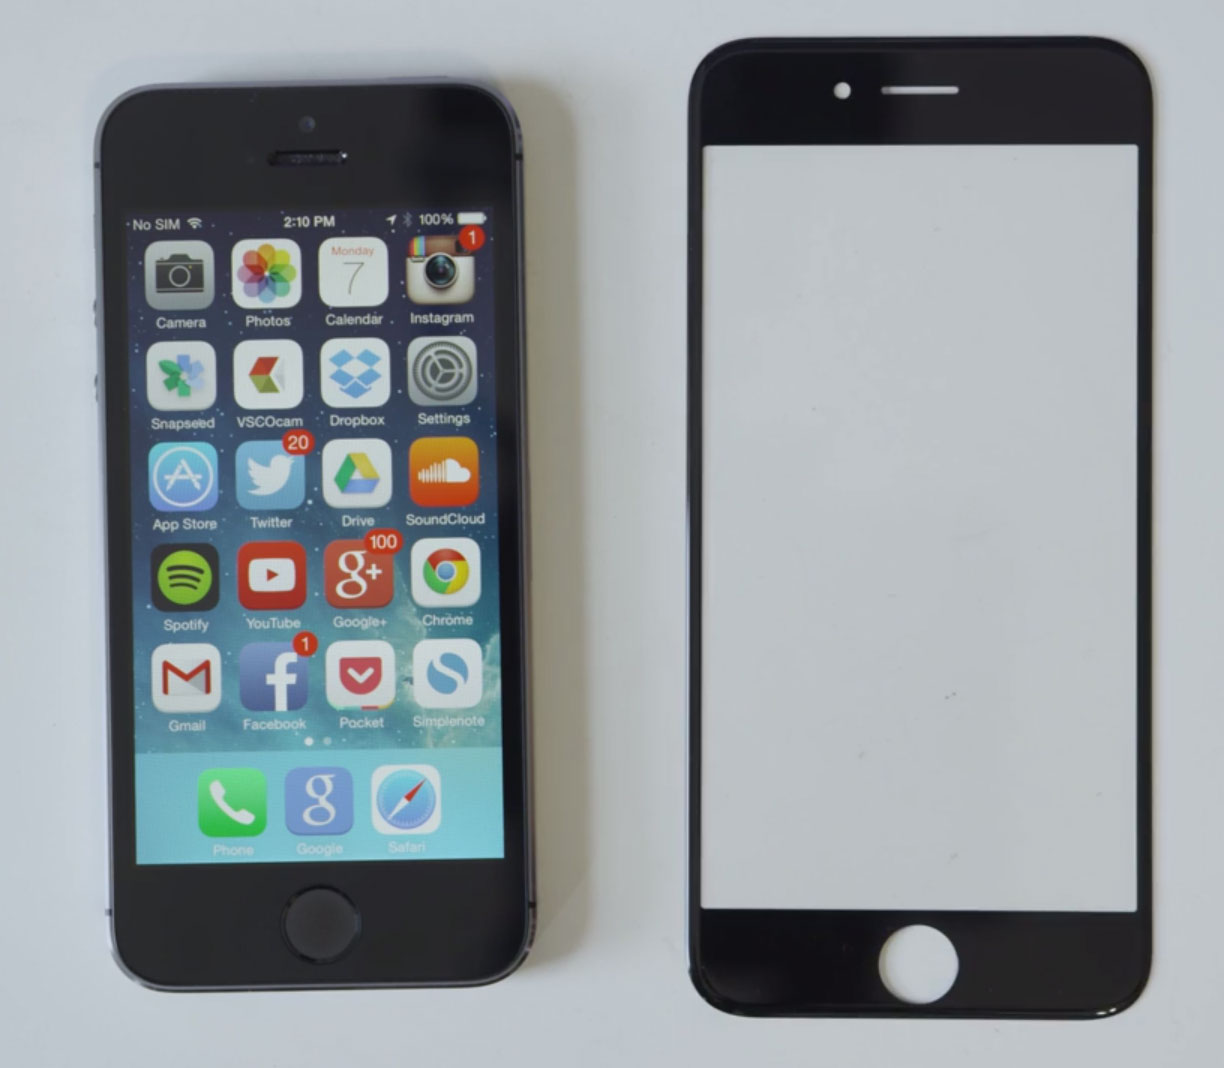 iphone-5s-and-iphone-6-front-panel-larger